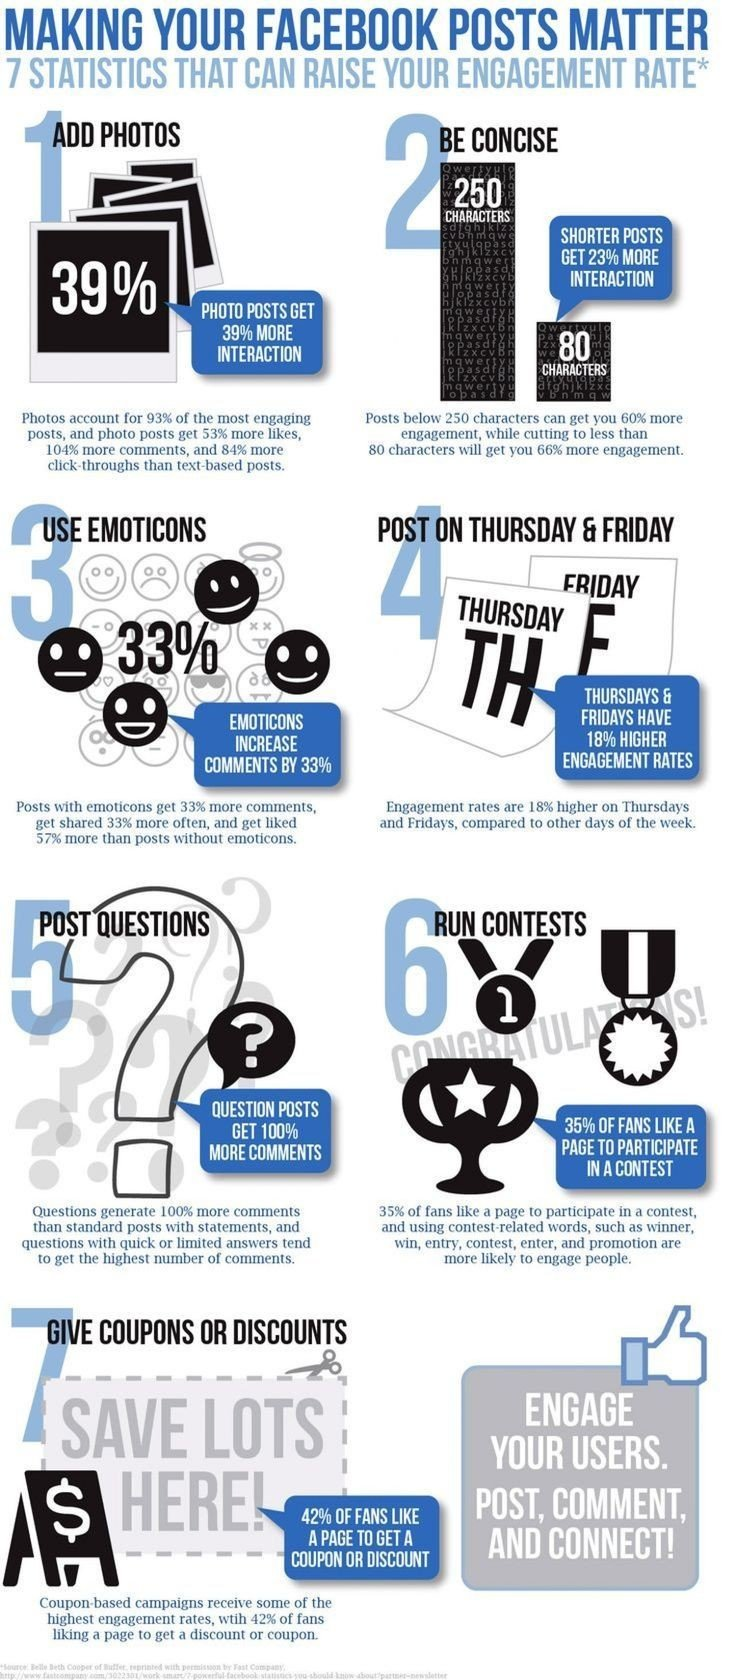 Making your #Facebook posts matter #SMM #Marketing #Infographic